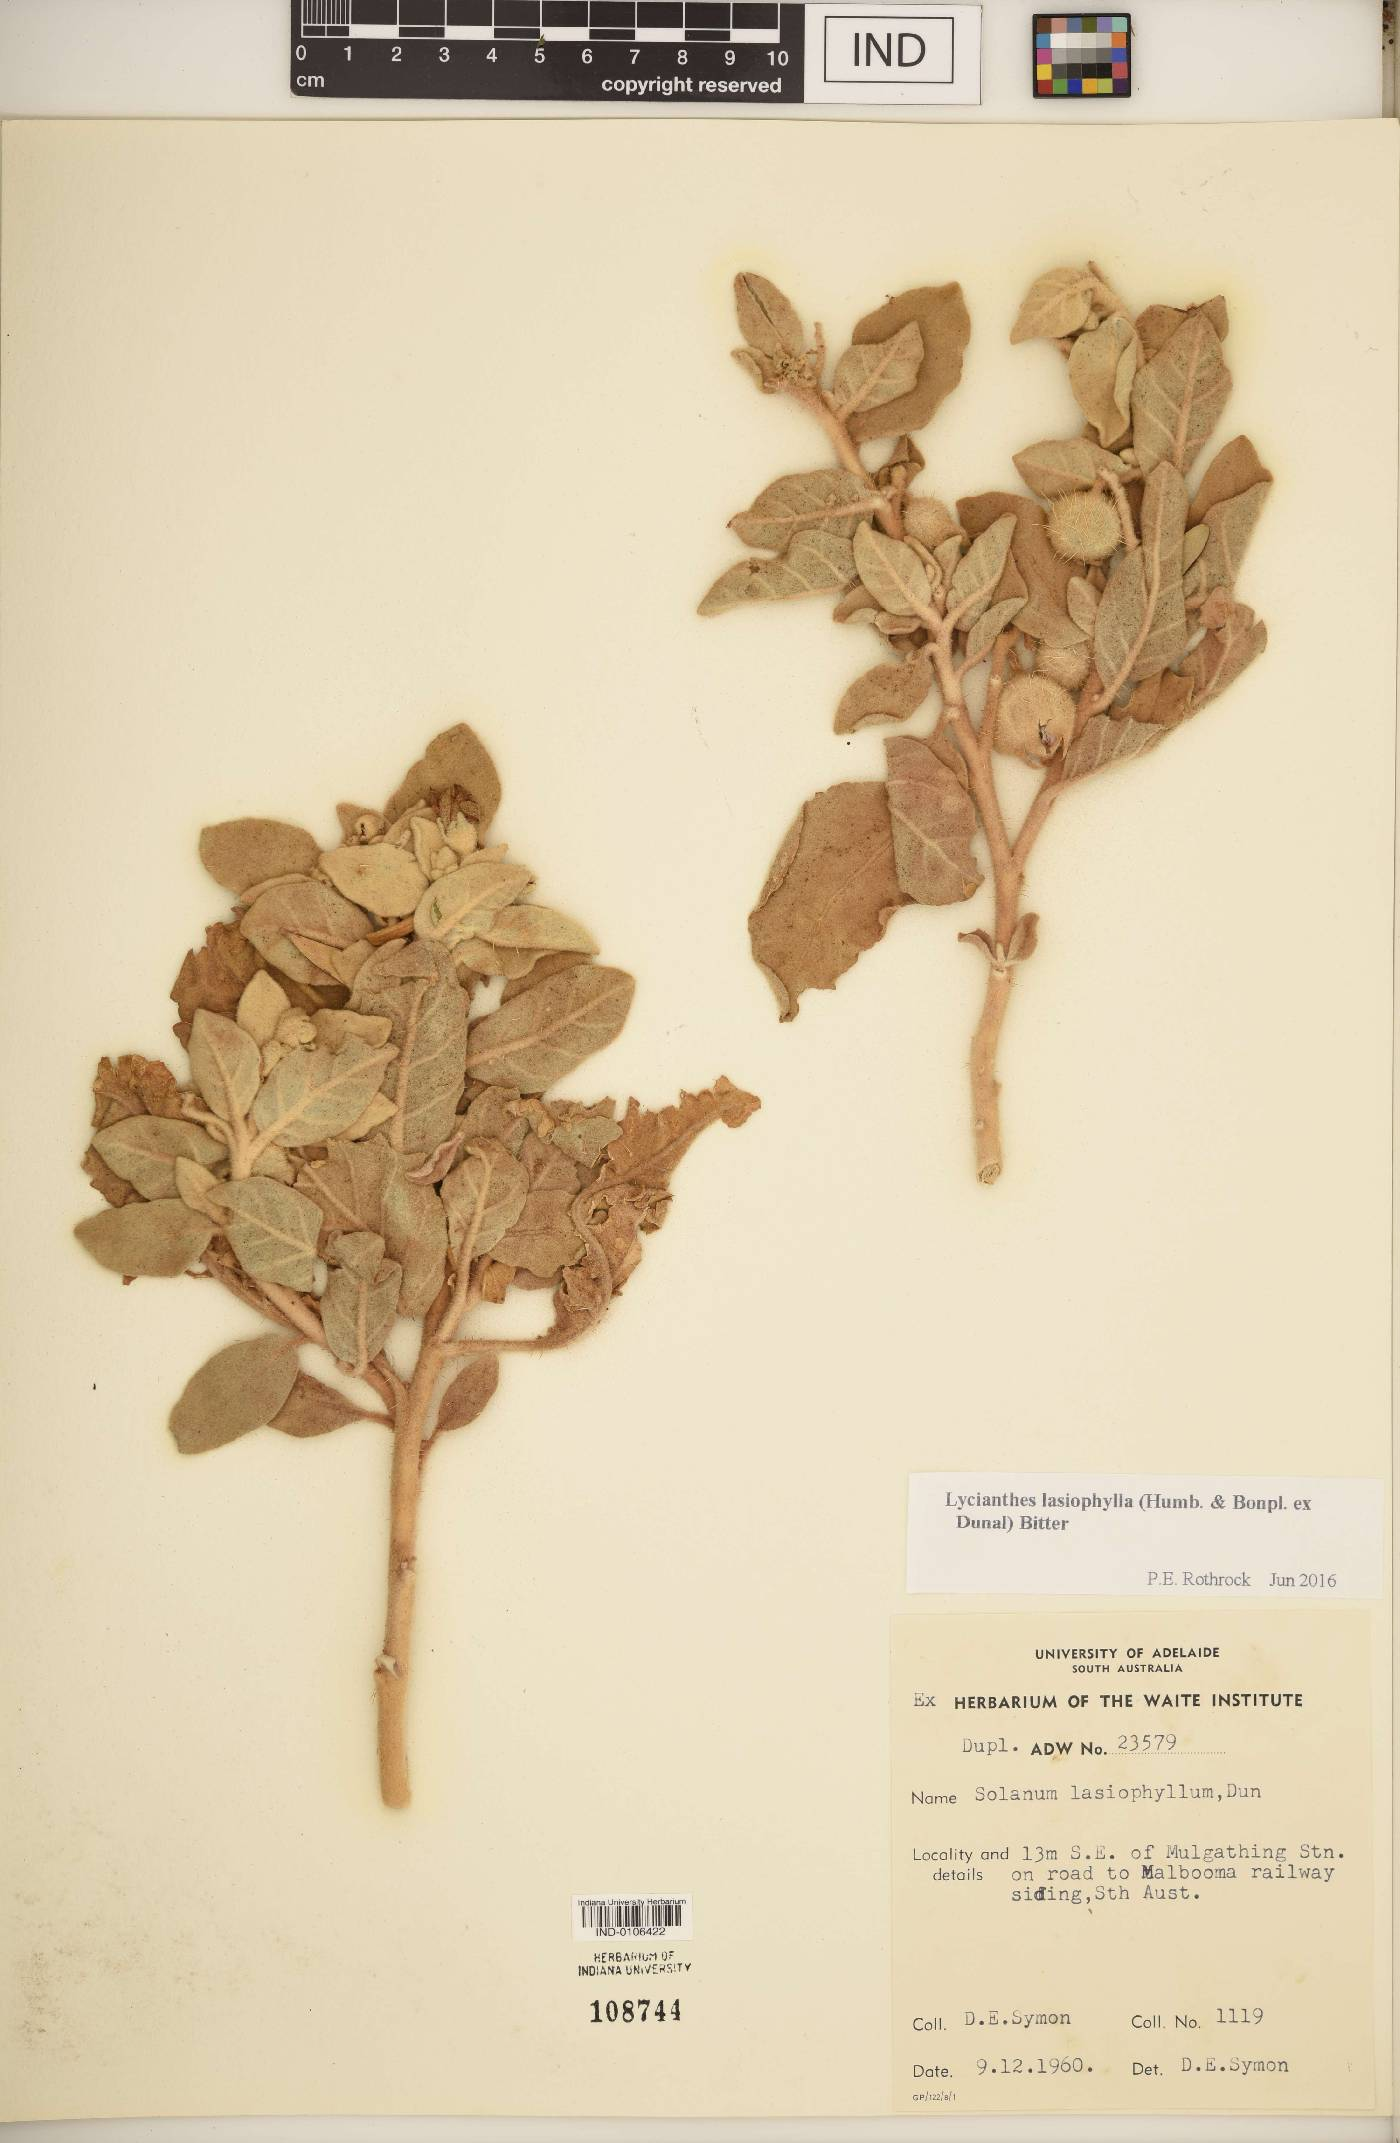 Lycianthes lasiophylla image